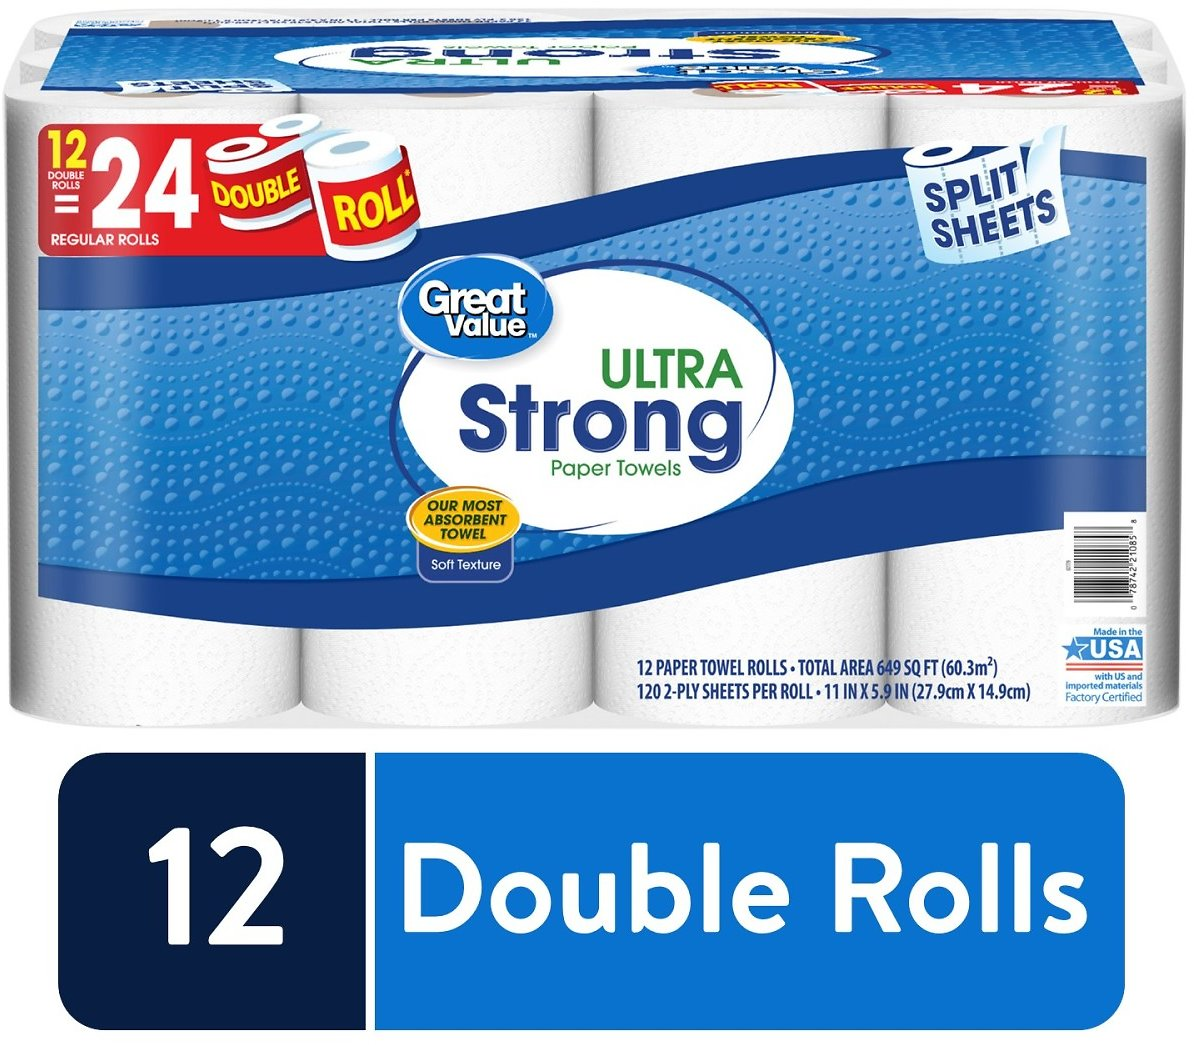 Great Value Ultra Strong Paper Towels, Split Sheets, 12 Double Rolls.